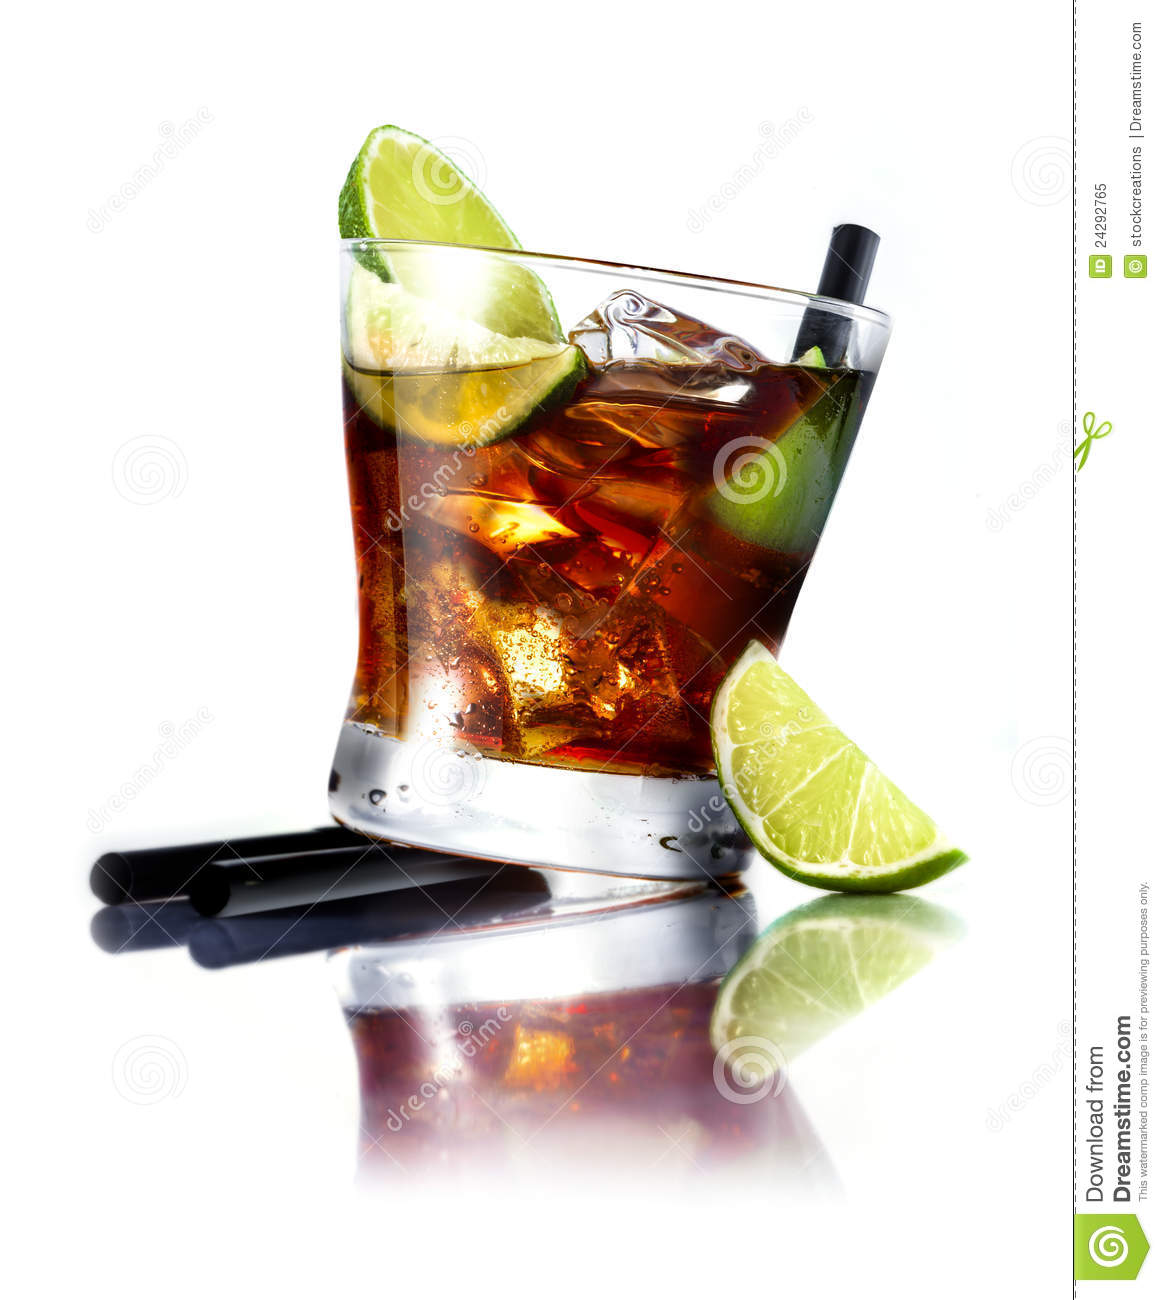 cuba libre cocktail royalty free stock photo image 24292765. Black Bedroom Furniture Sets. Home Design Ideas